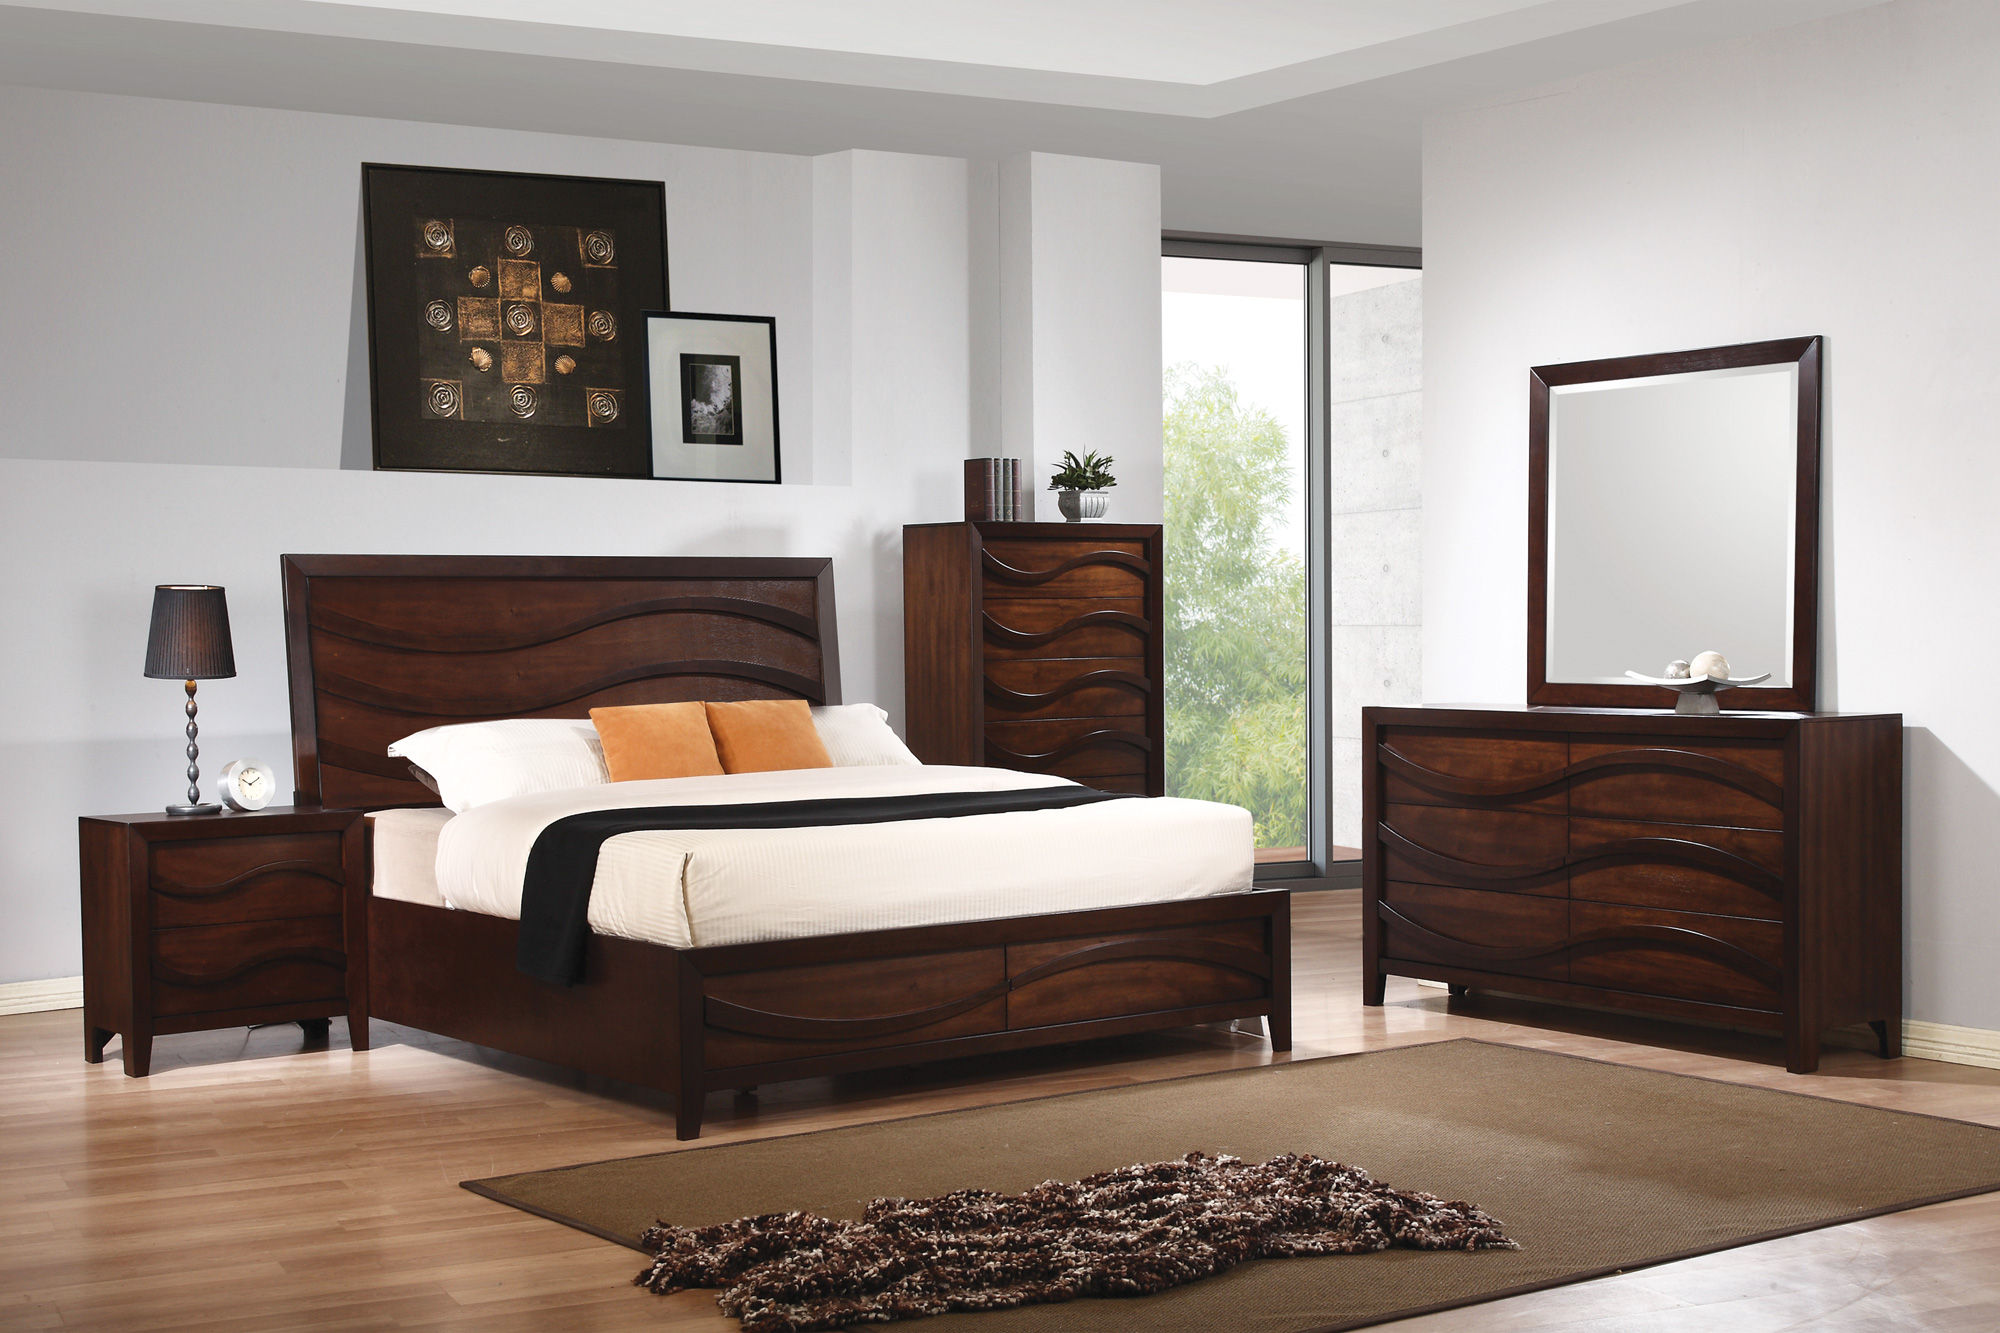 Loncar contemporary brown hardwoods veneers master for Best deals on bedroom furniture